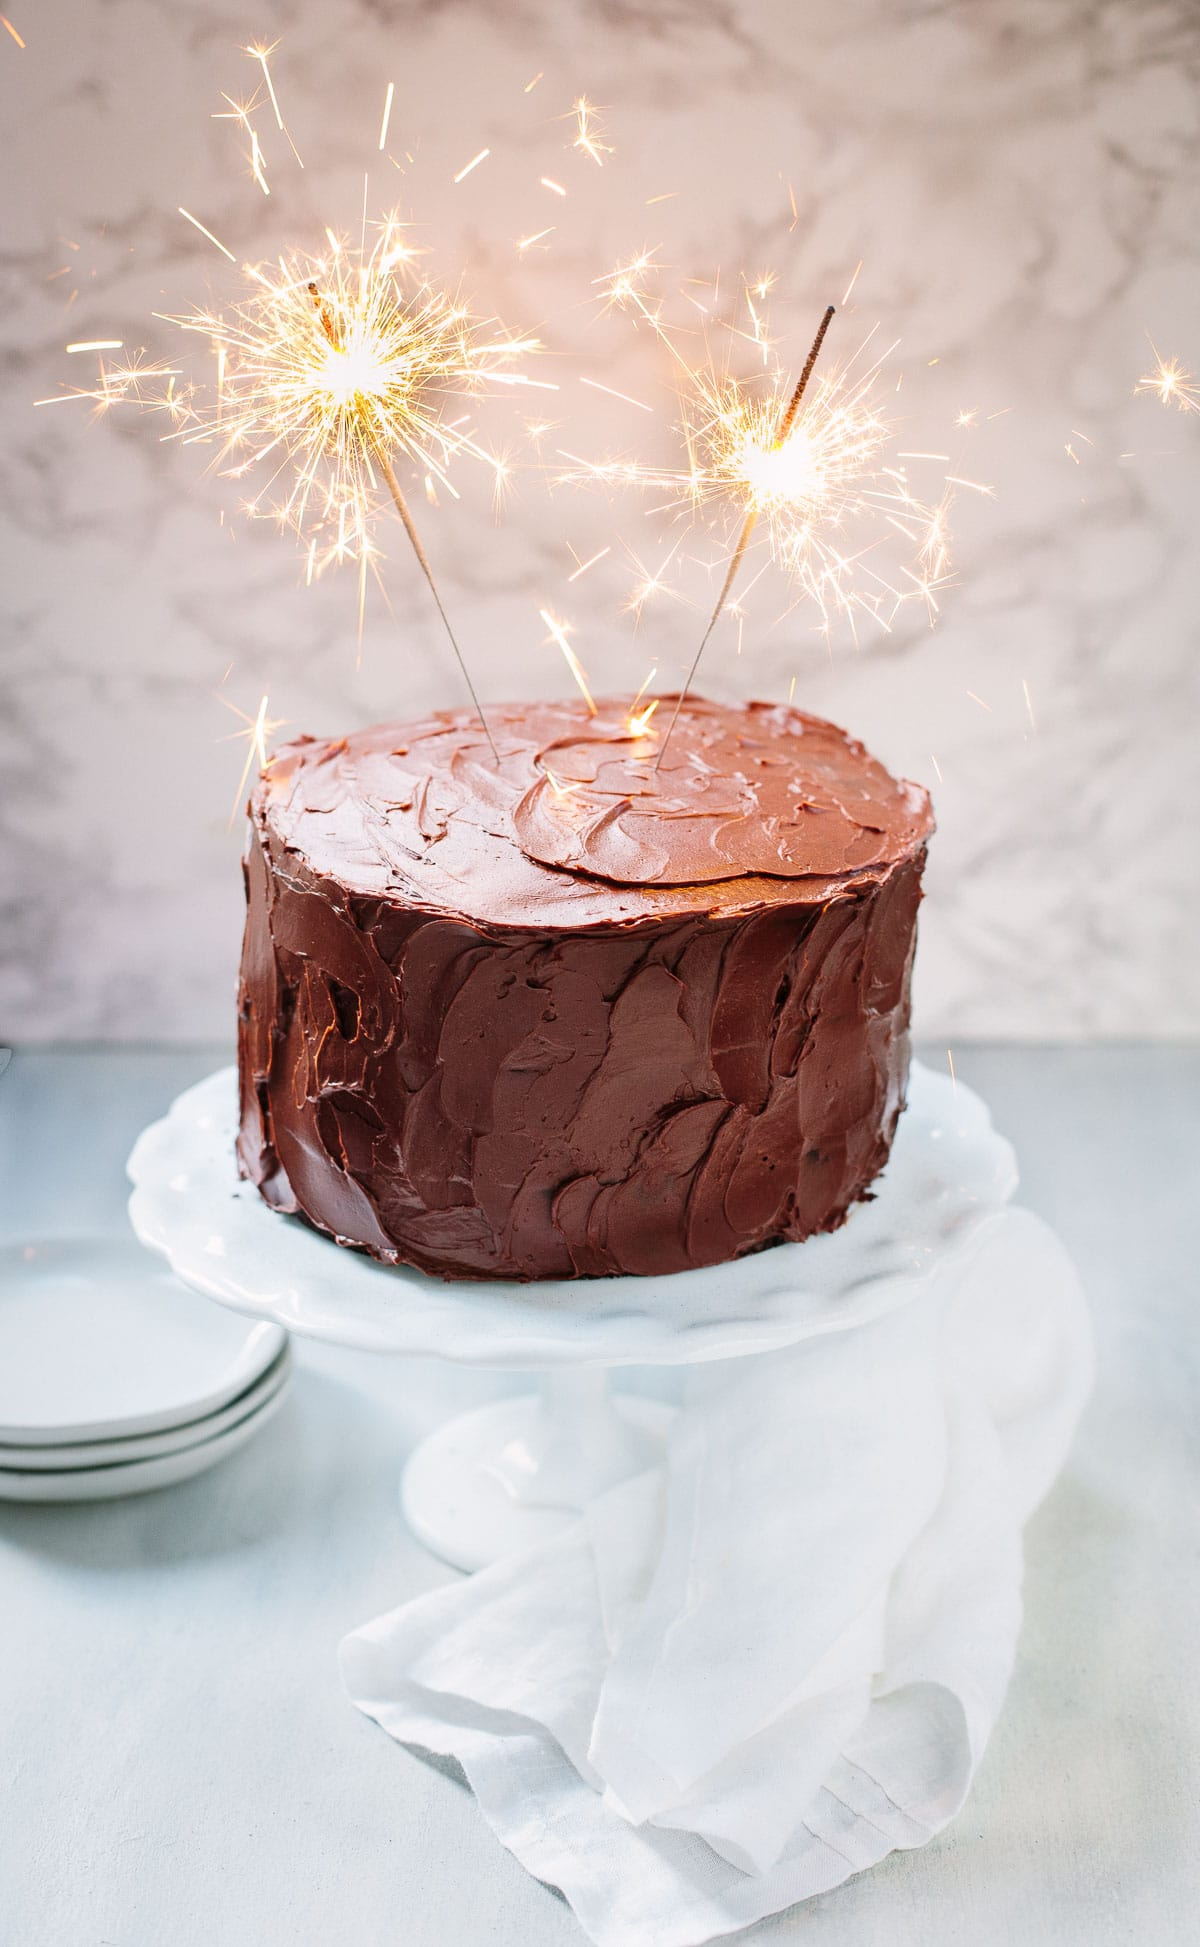 A frosted chocolate layer cake on a white cake stand with sparklers on top.